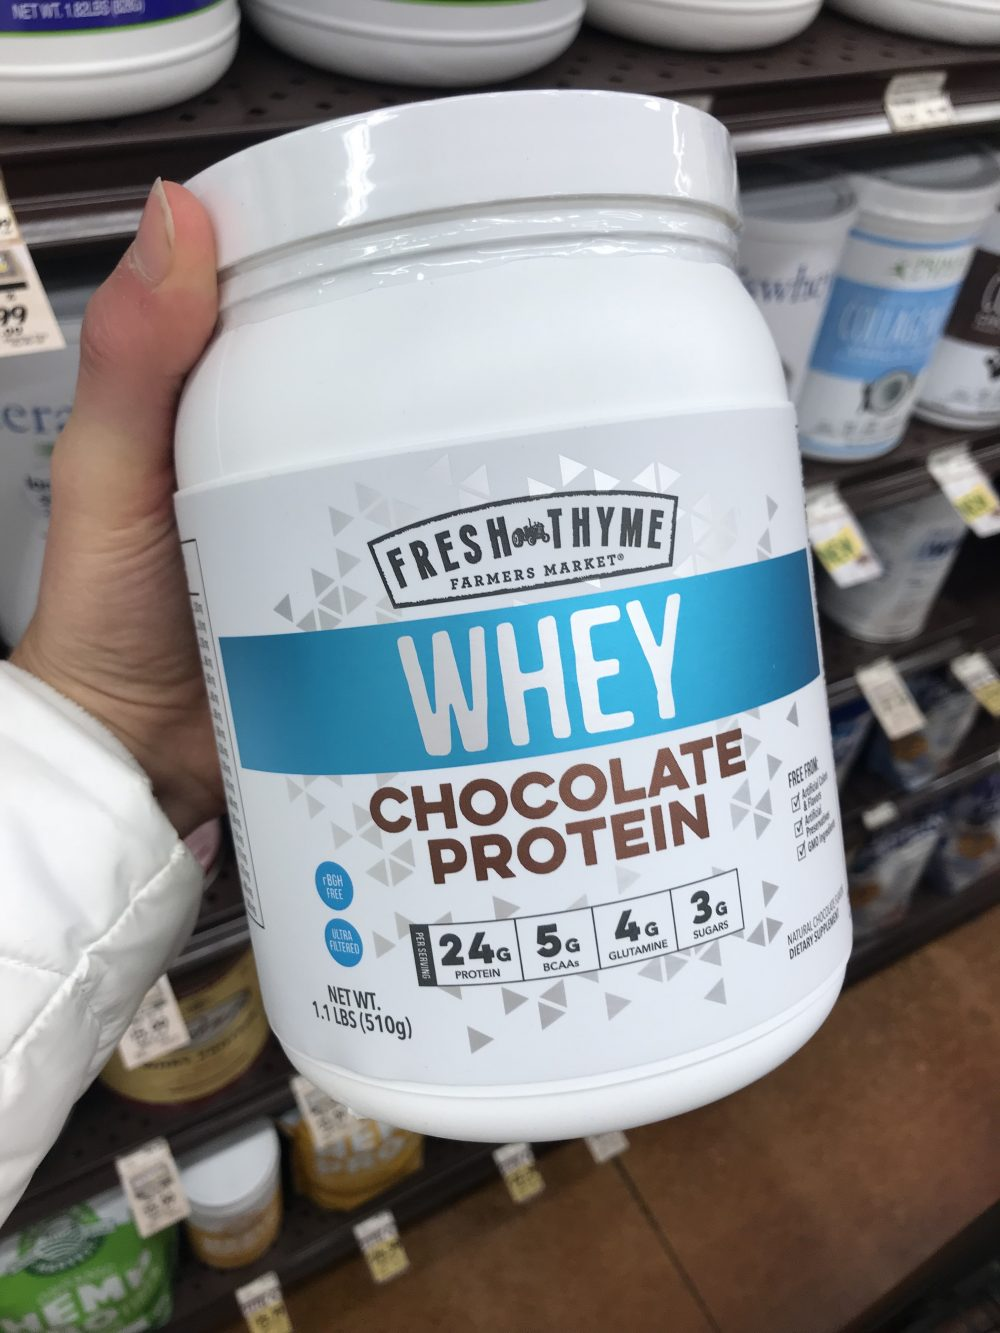 Large white jar of chocolate protein powder